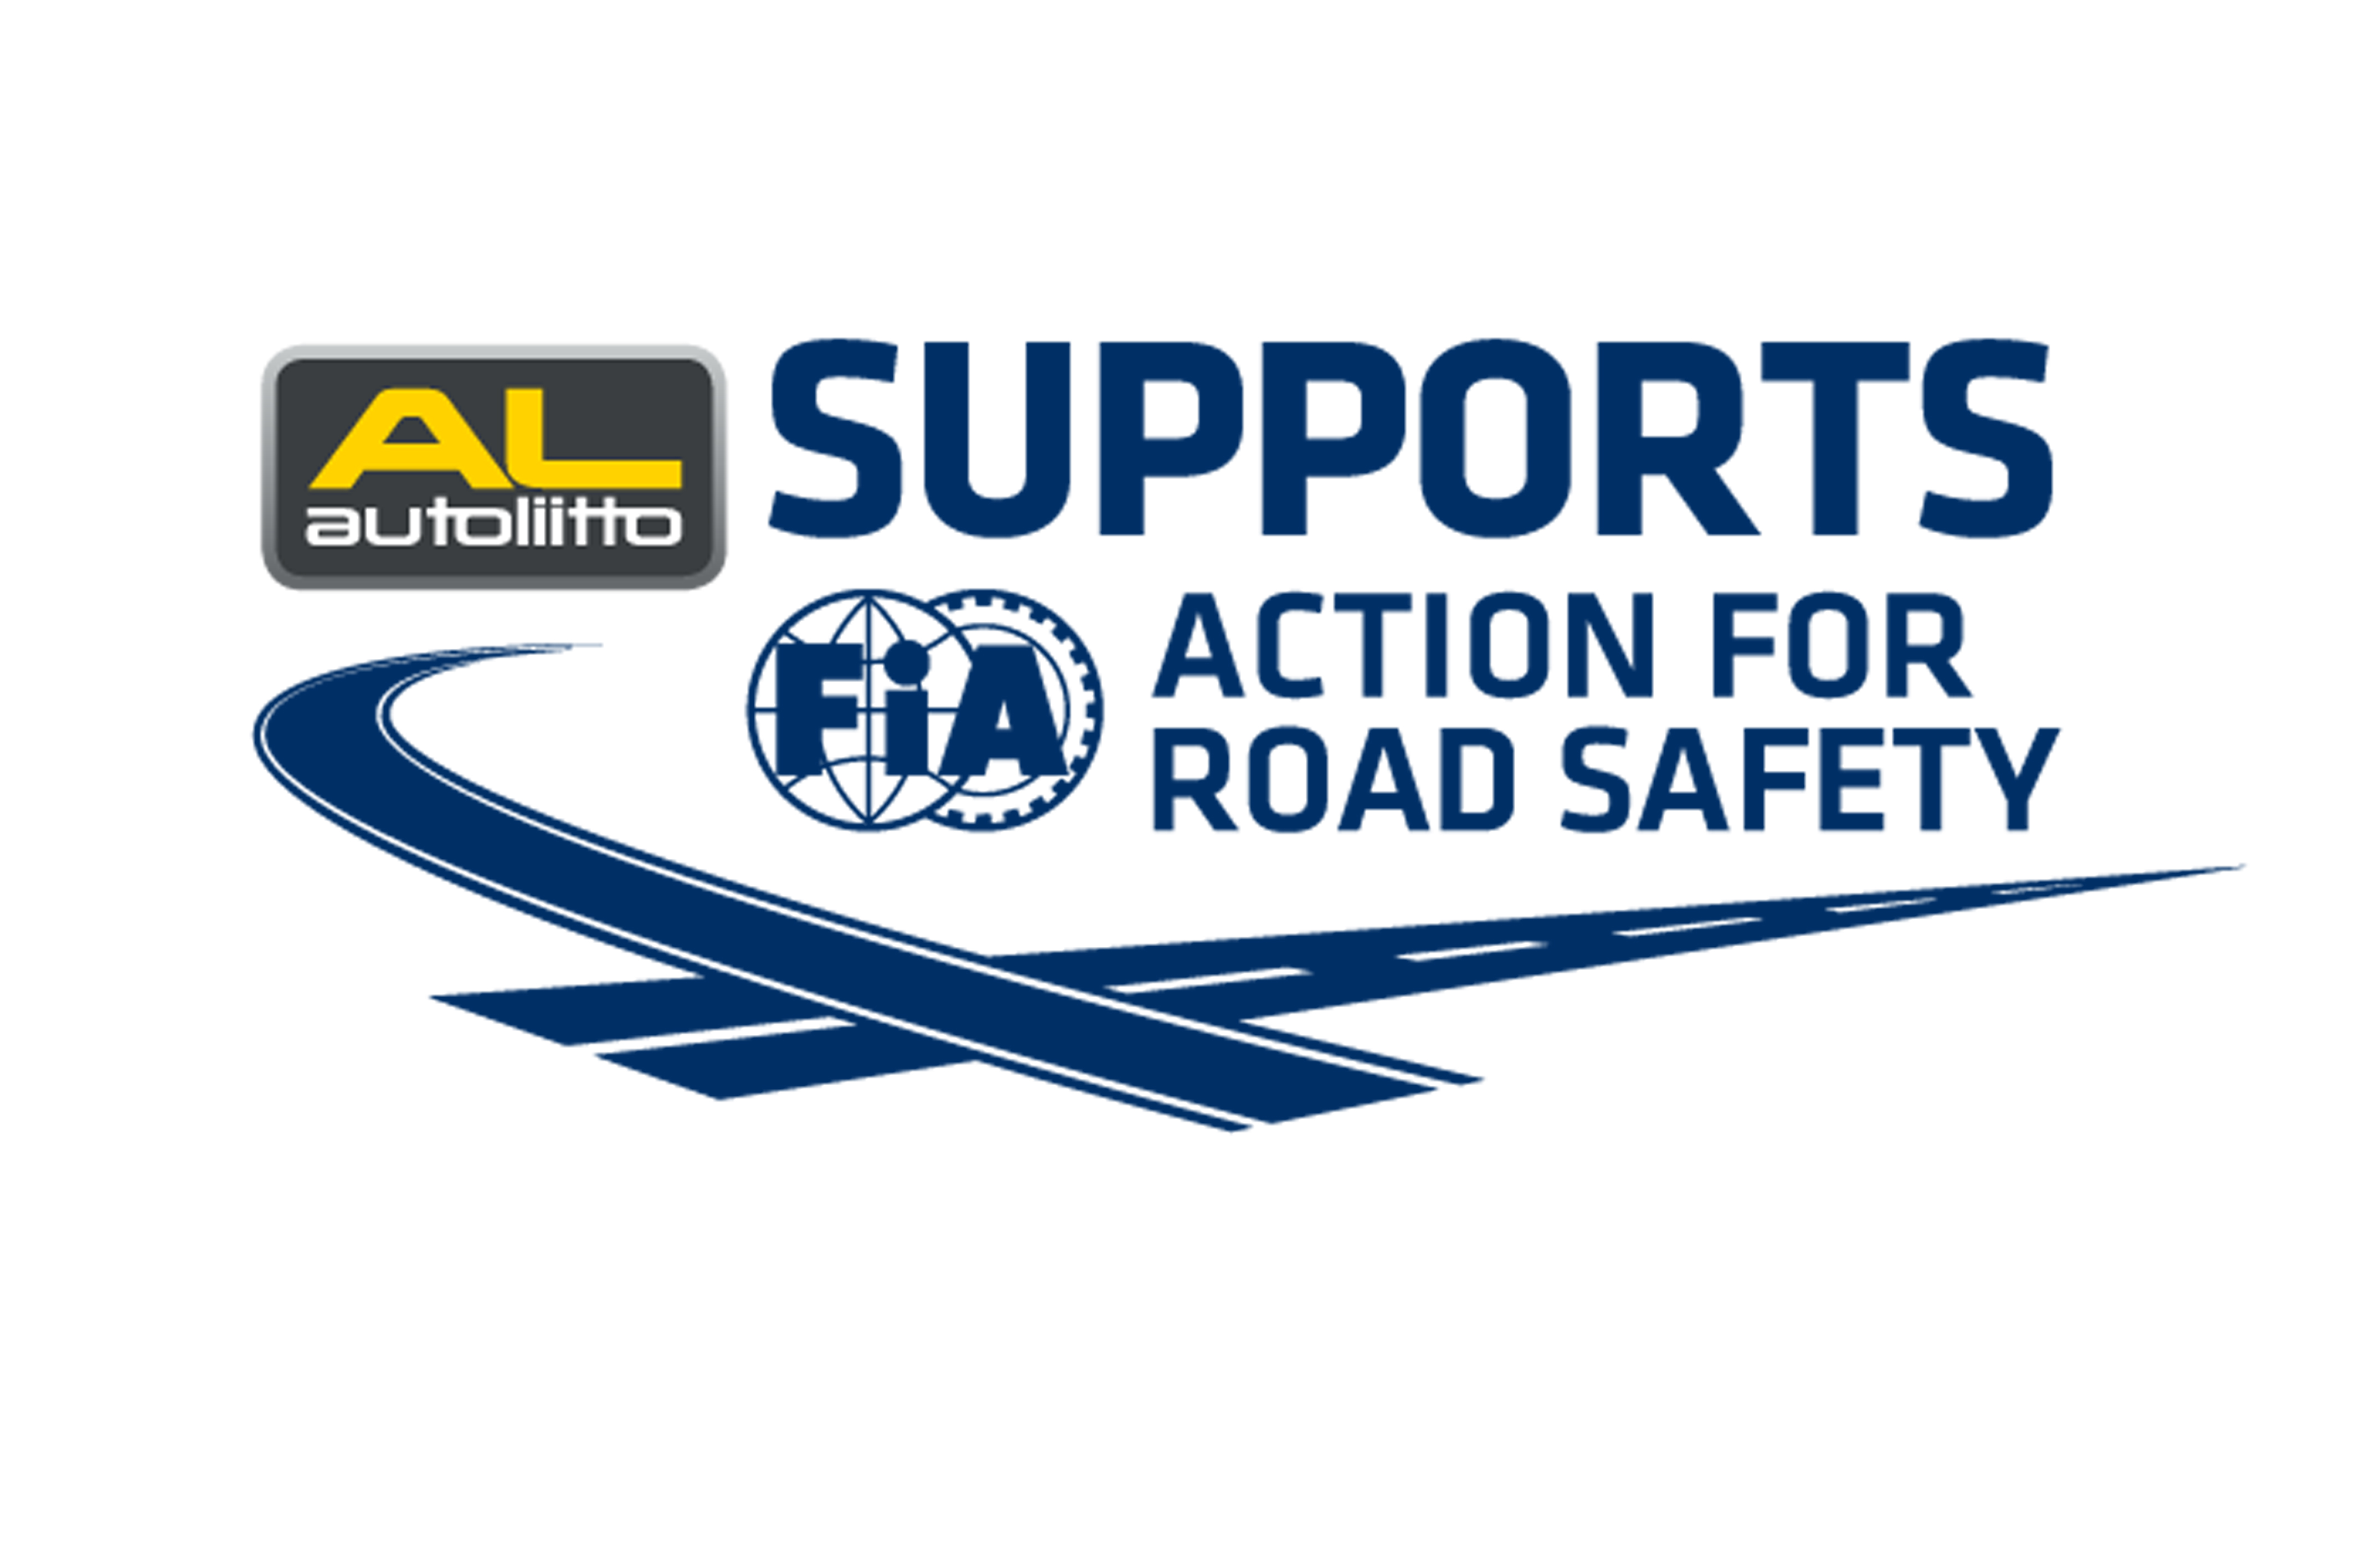 Autoliitto supports Action for Road Safety